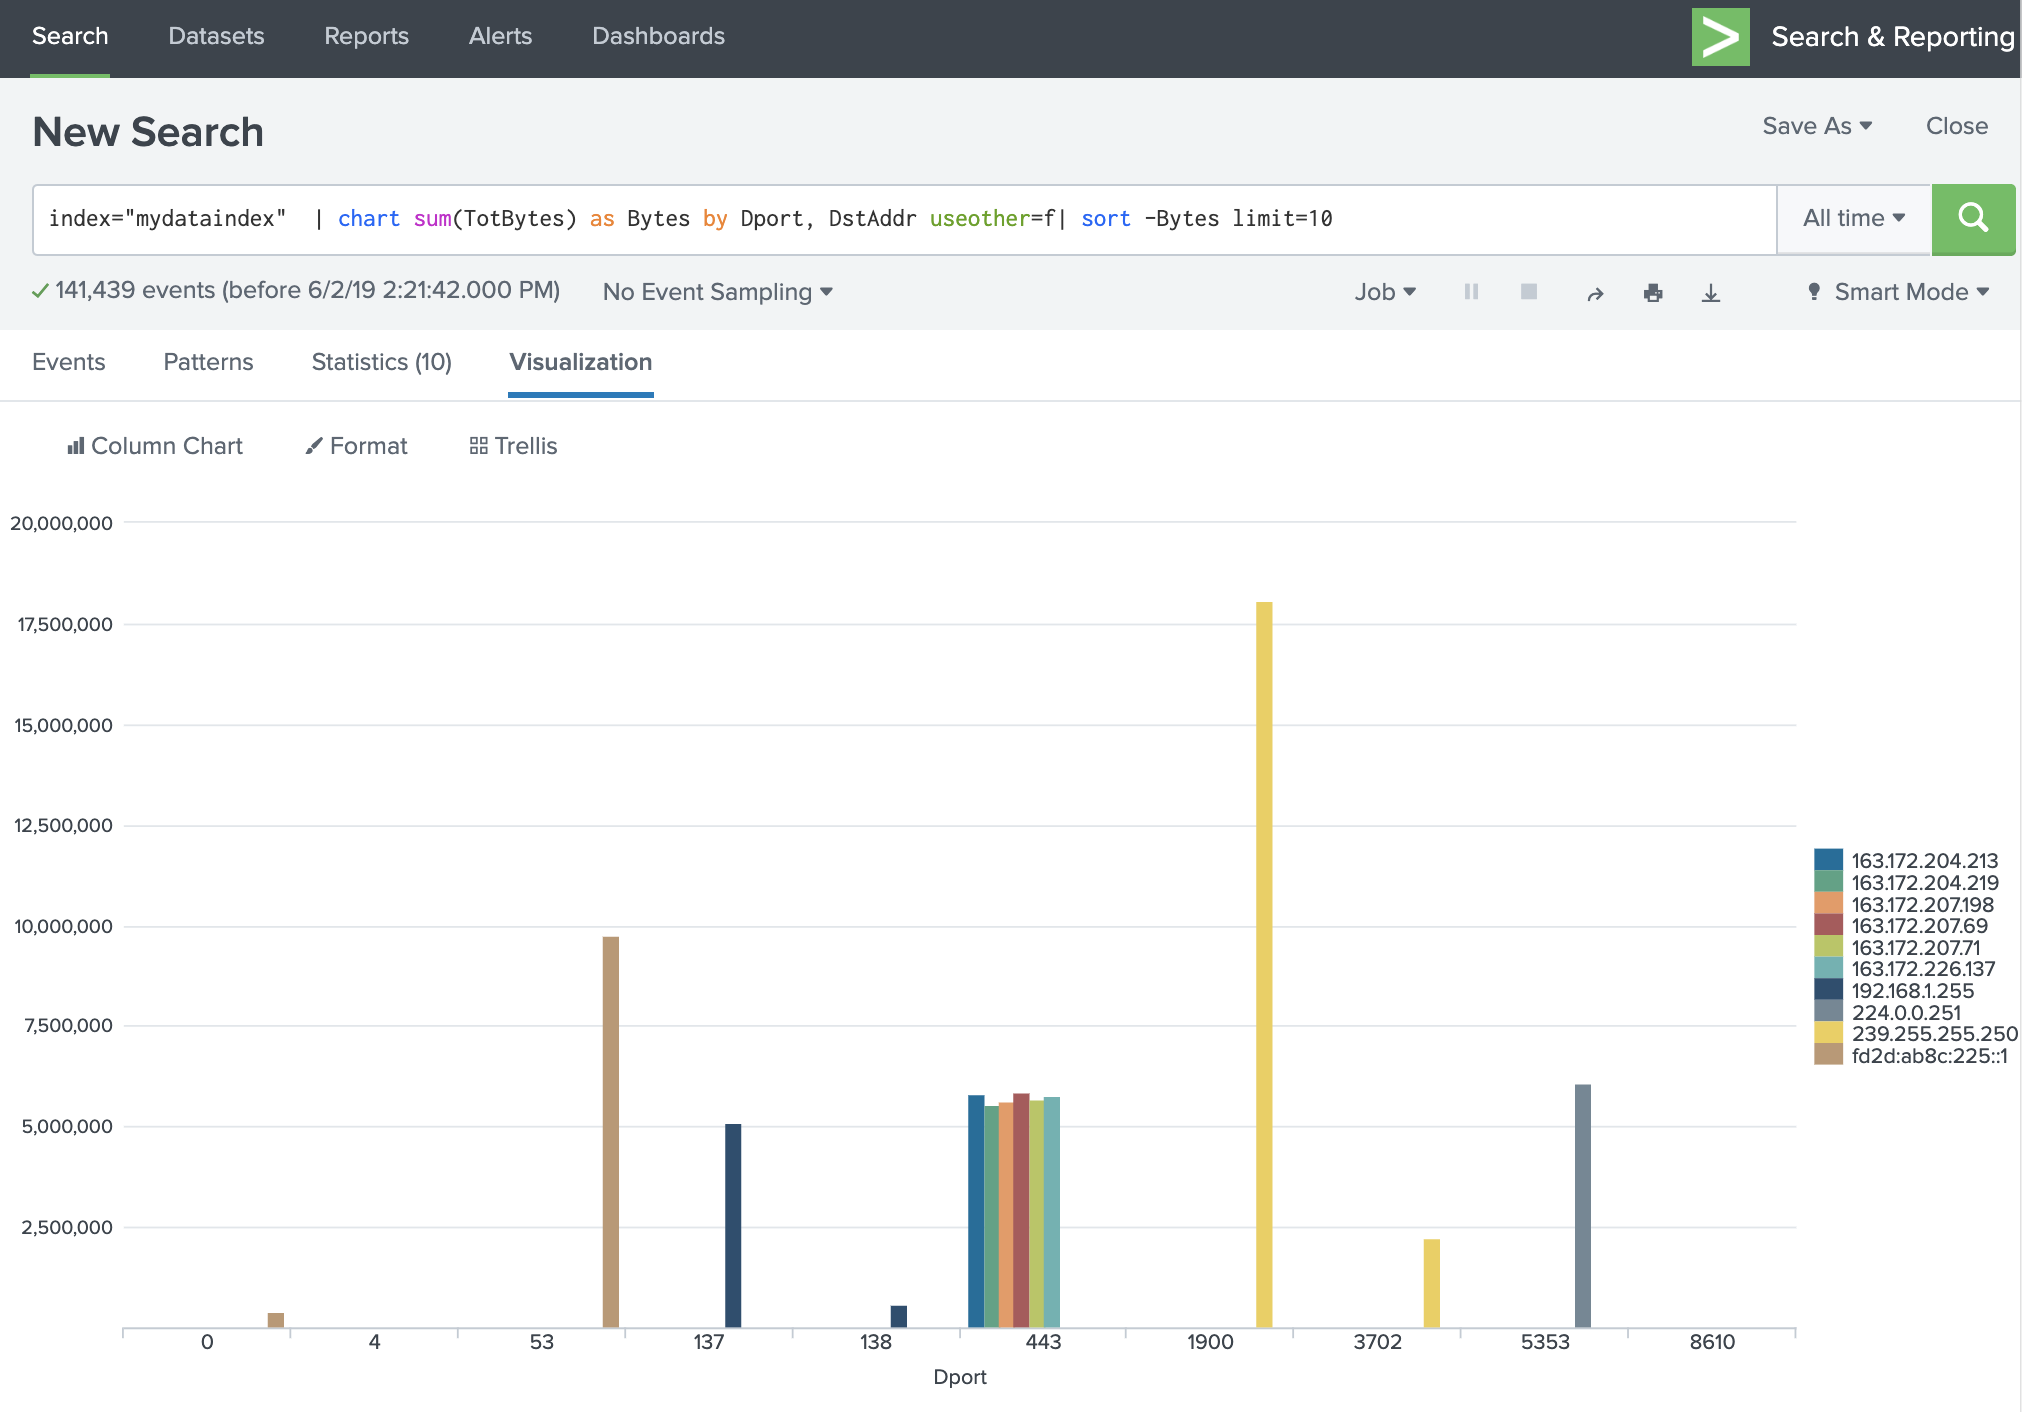 Getting Started With Splunk: Basic Searching & Data Viz